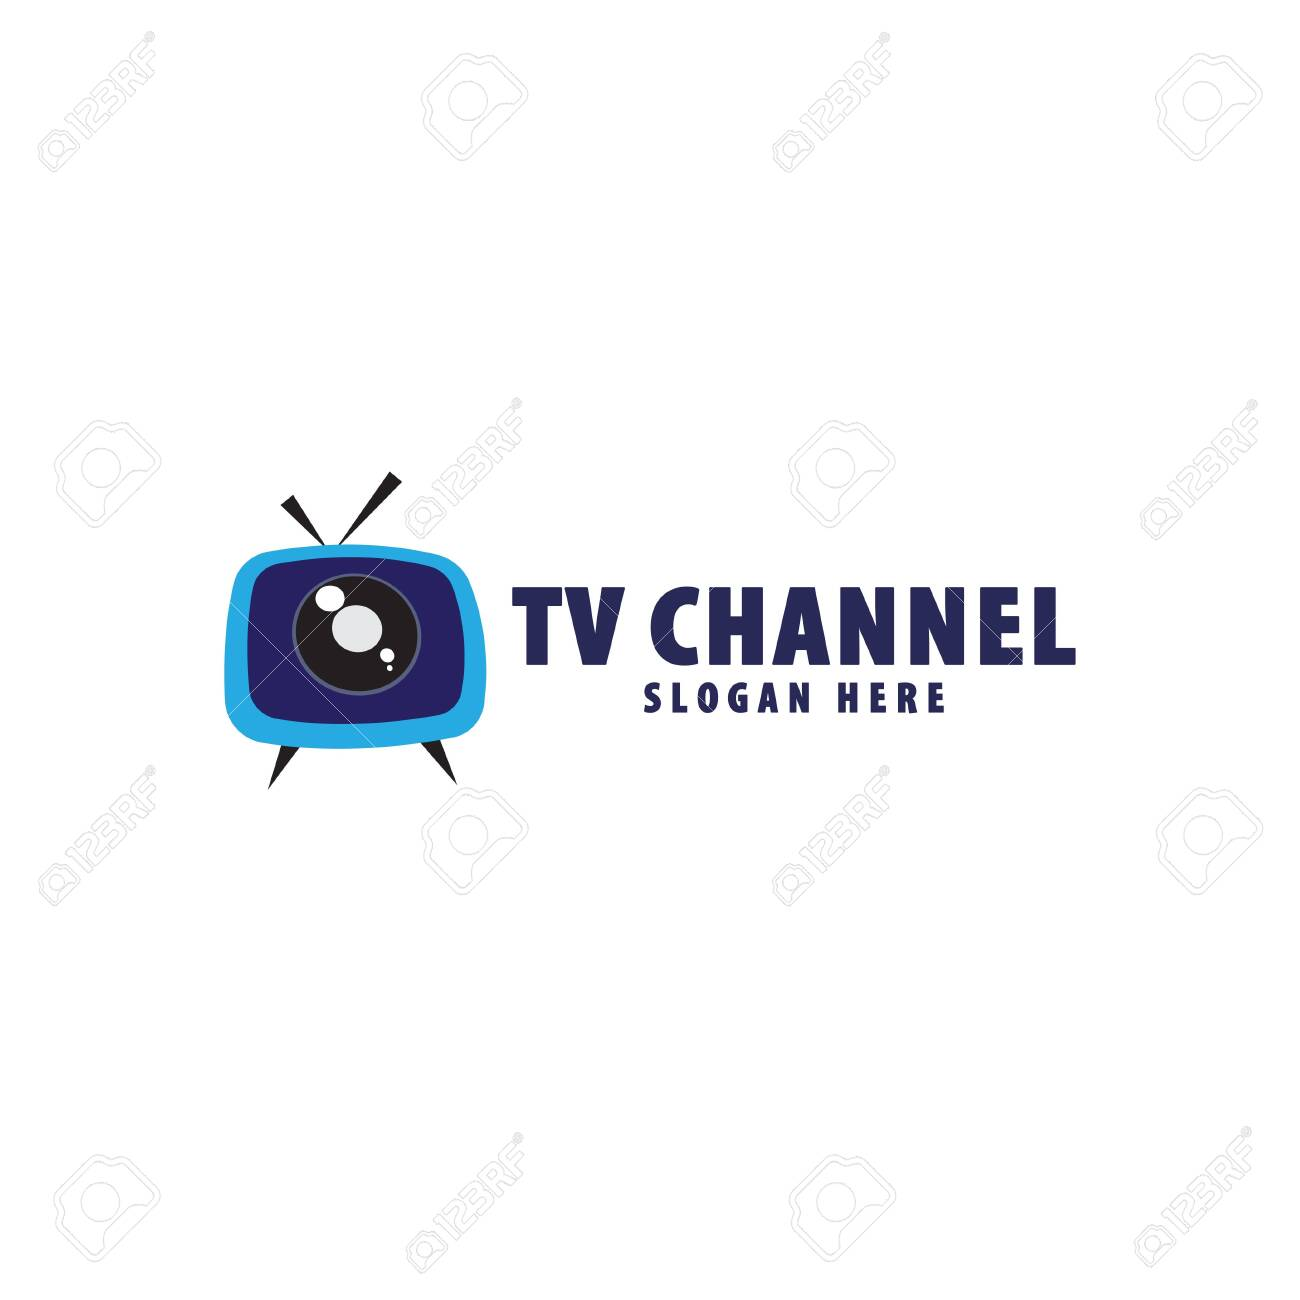 TV Live Streaming, Online Television, Web TV, Logo Concept, Without Play  Button, Blue Background, Eye Concept, TV Channel Logo Design Template  Royalty Free Cliparts, Vectors, And Stock Illustration. Image 126738114.